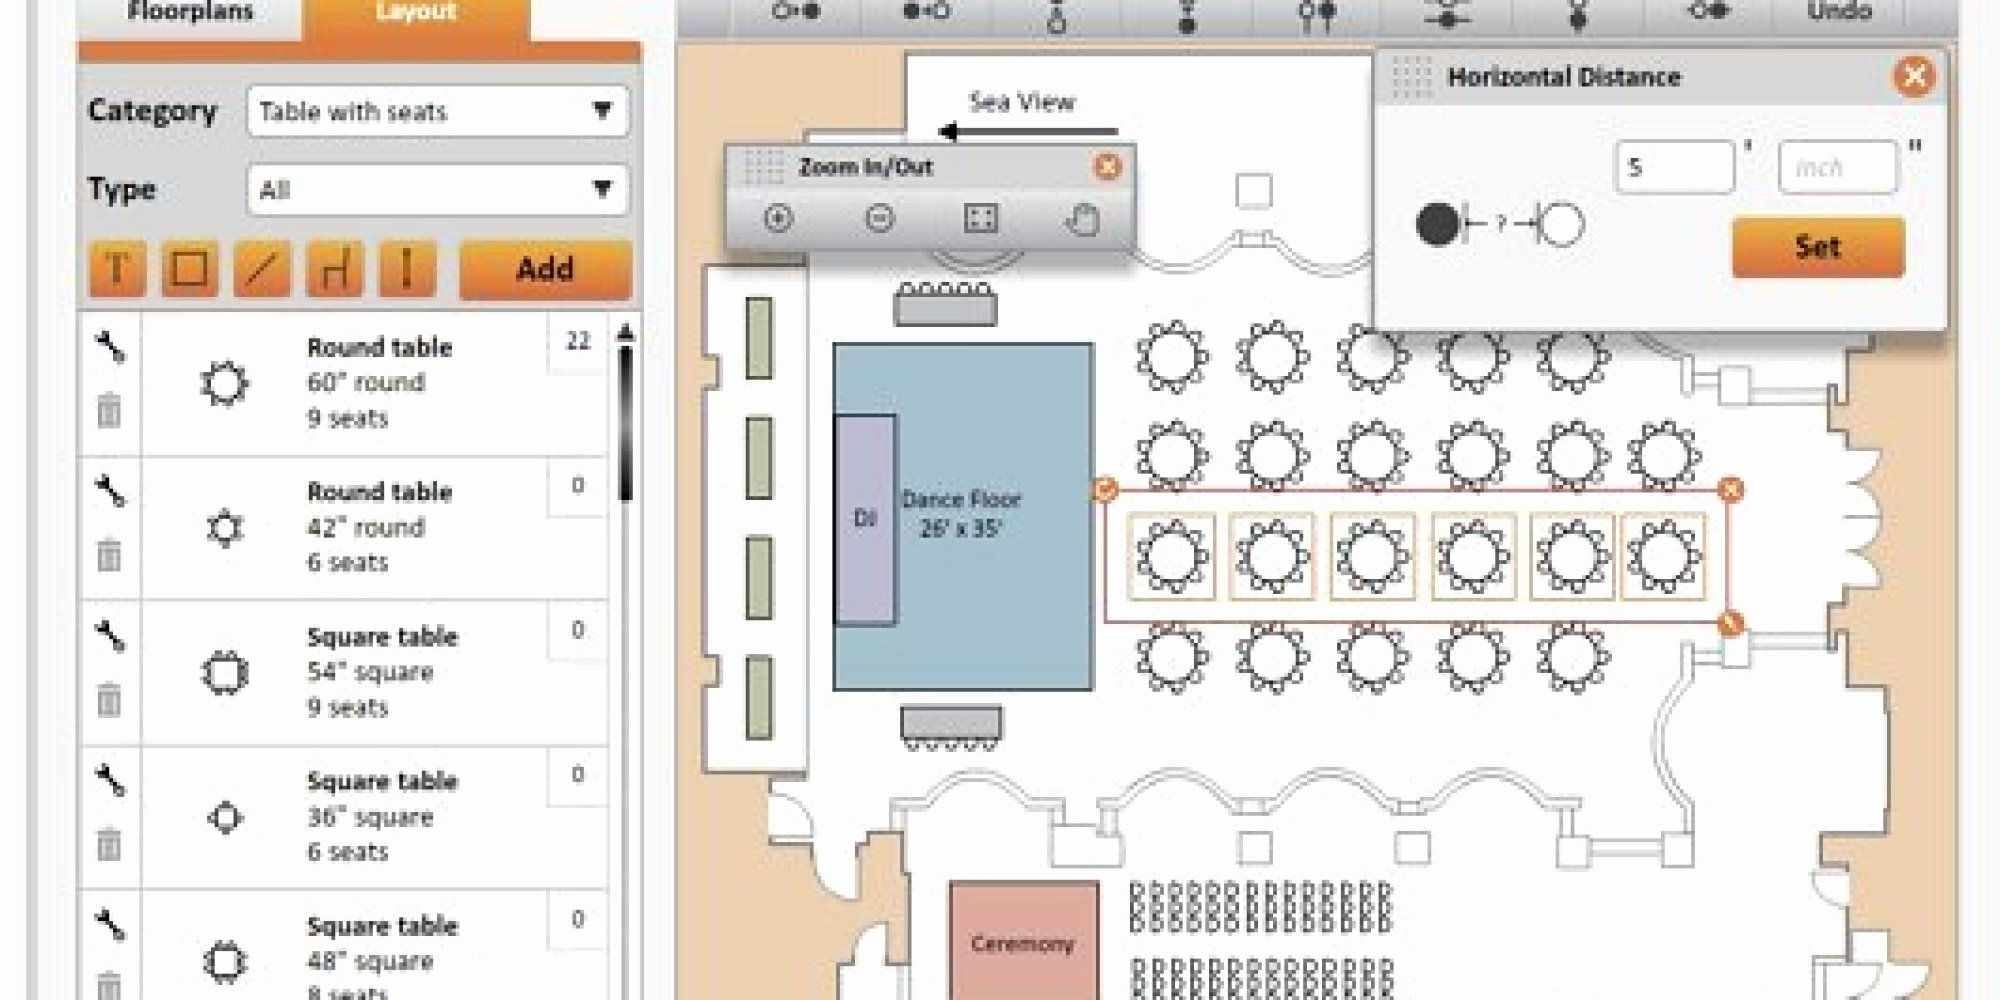 Free Wedding Floor Plan Template Awesome the Best Digital Seating Charts for Wedding Planning